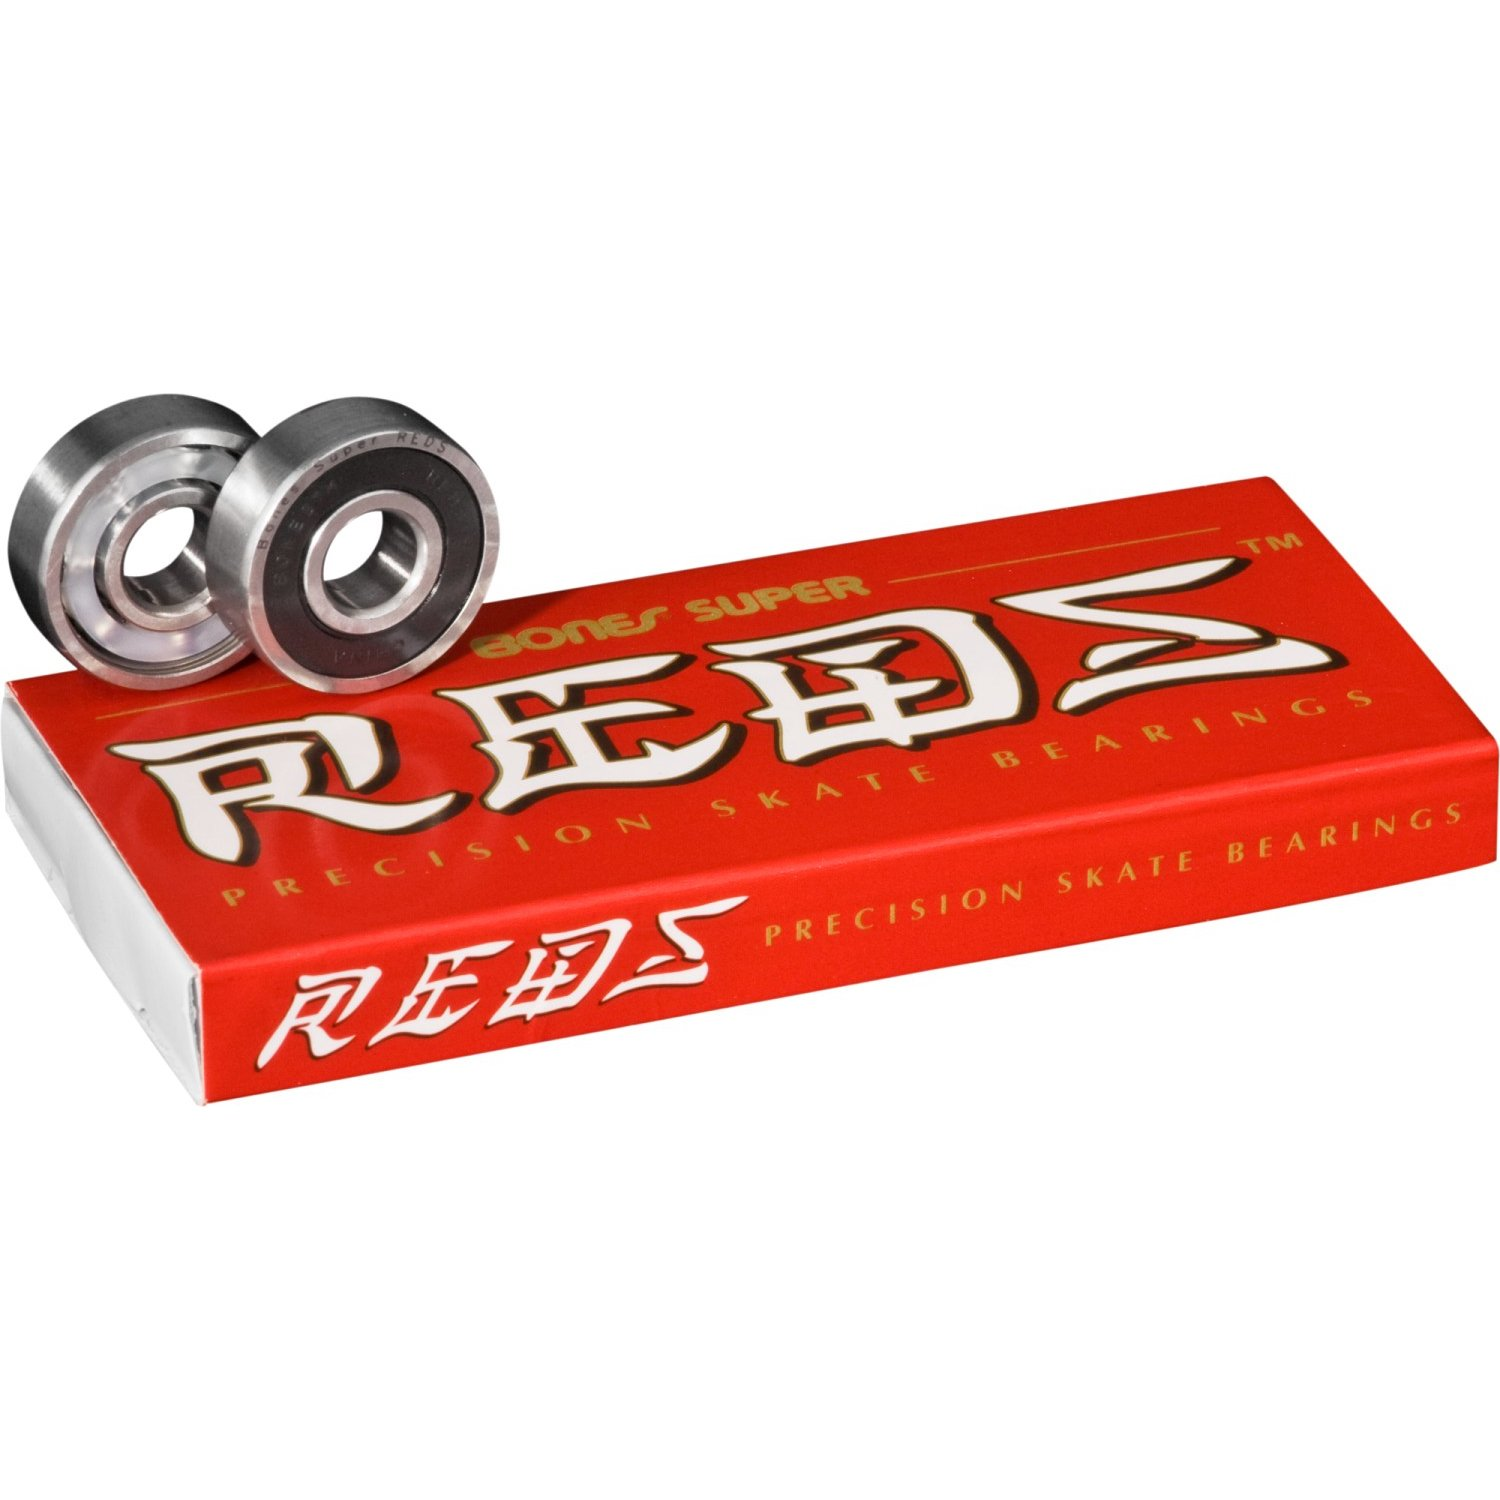 Bones Super Reds Precision Skate Bearings